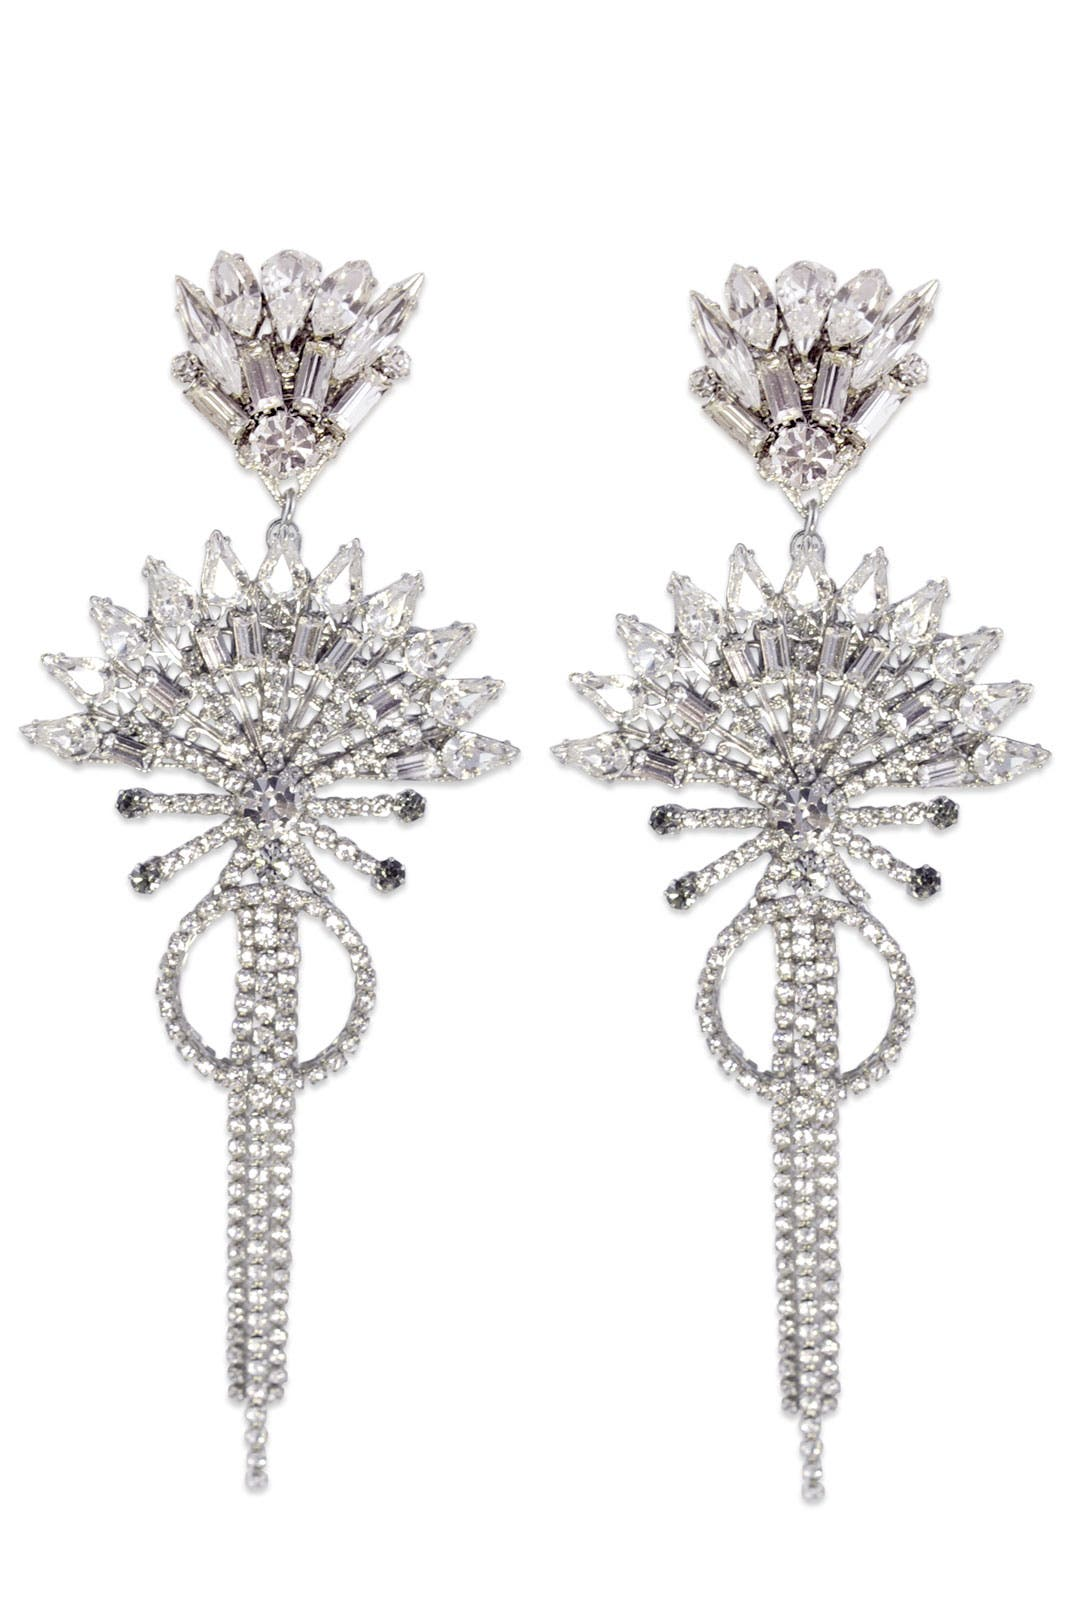 China Club Crystal Earrings by Erickson Beamon